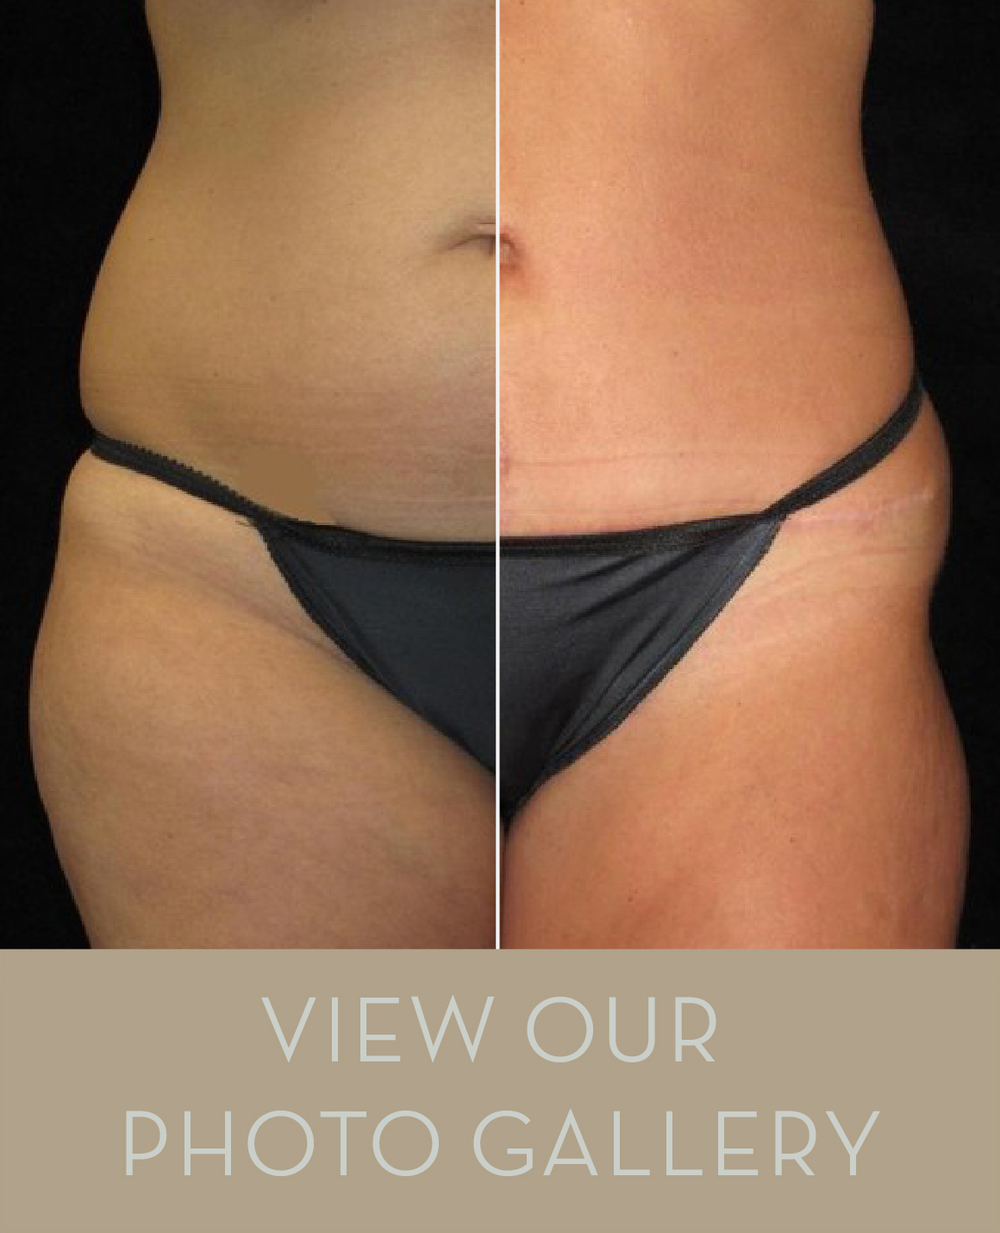 Explore Nashville Cosmetic Surgery's patient results photo gallery